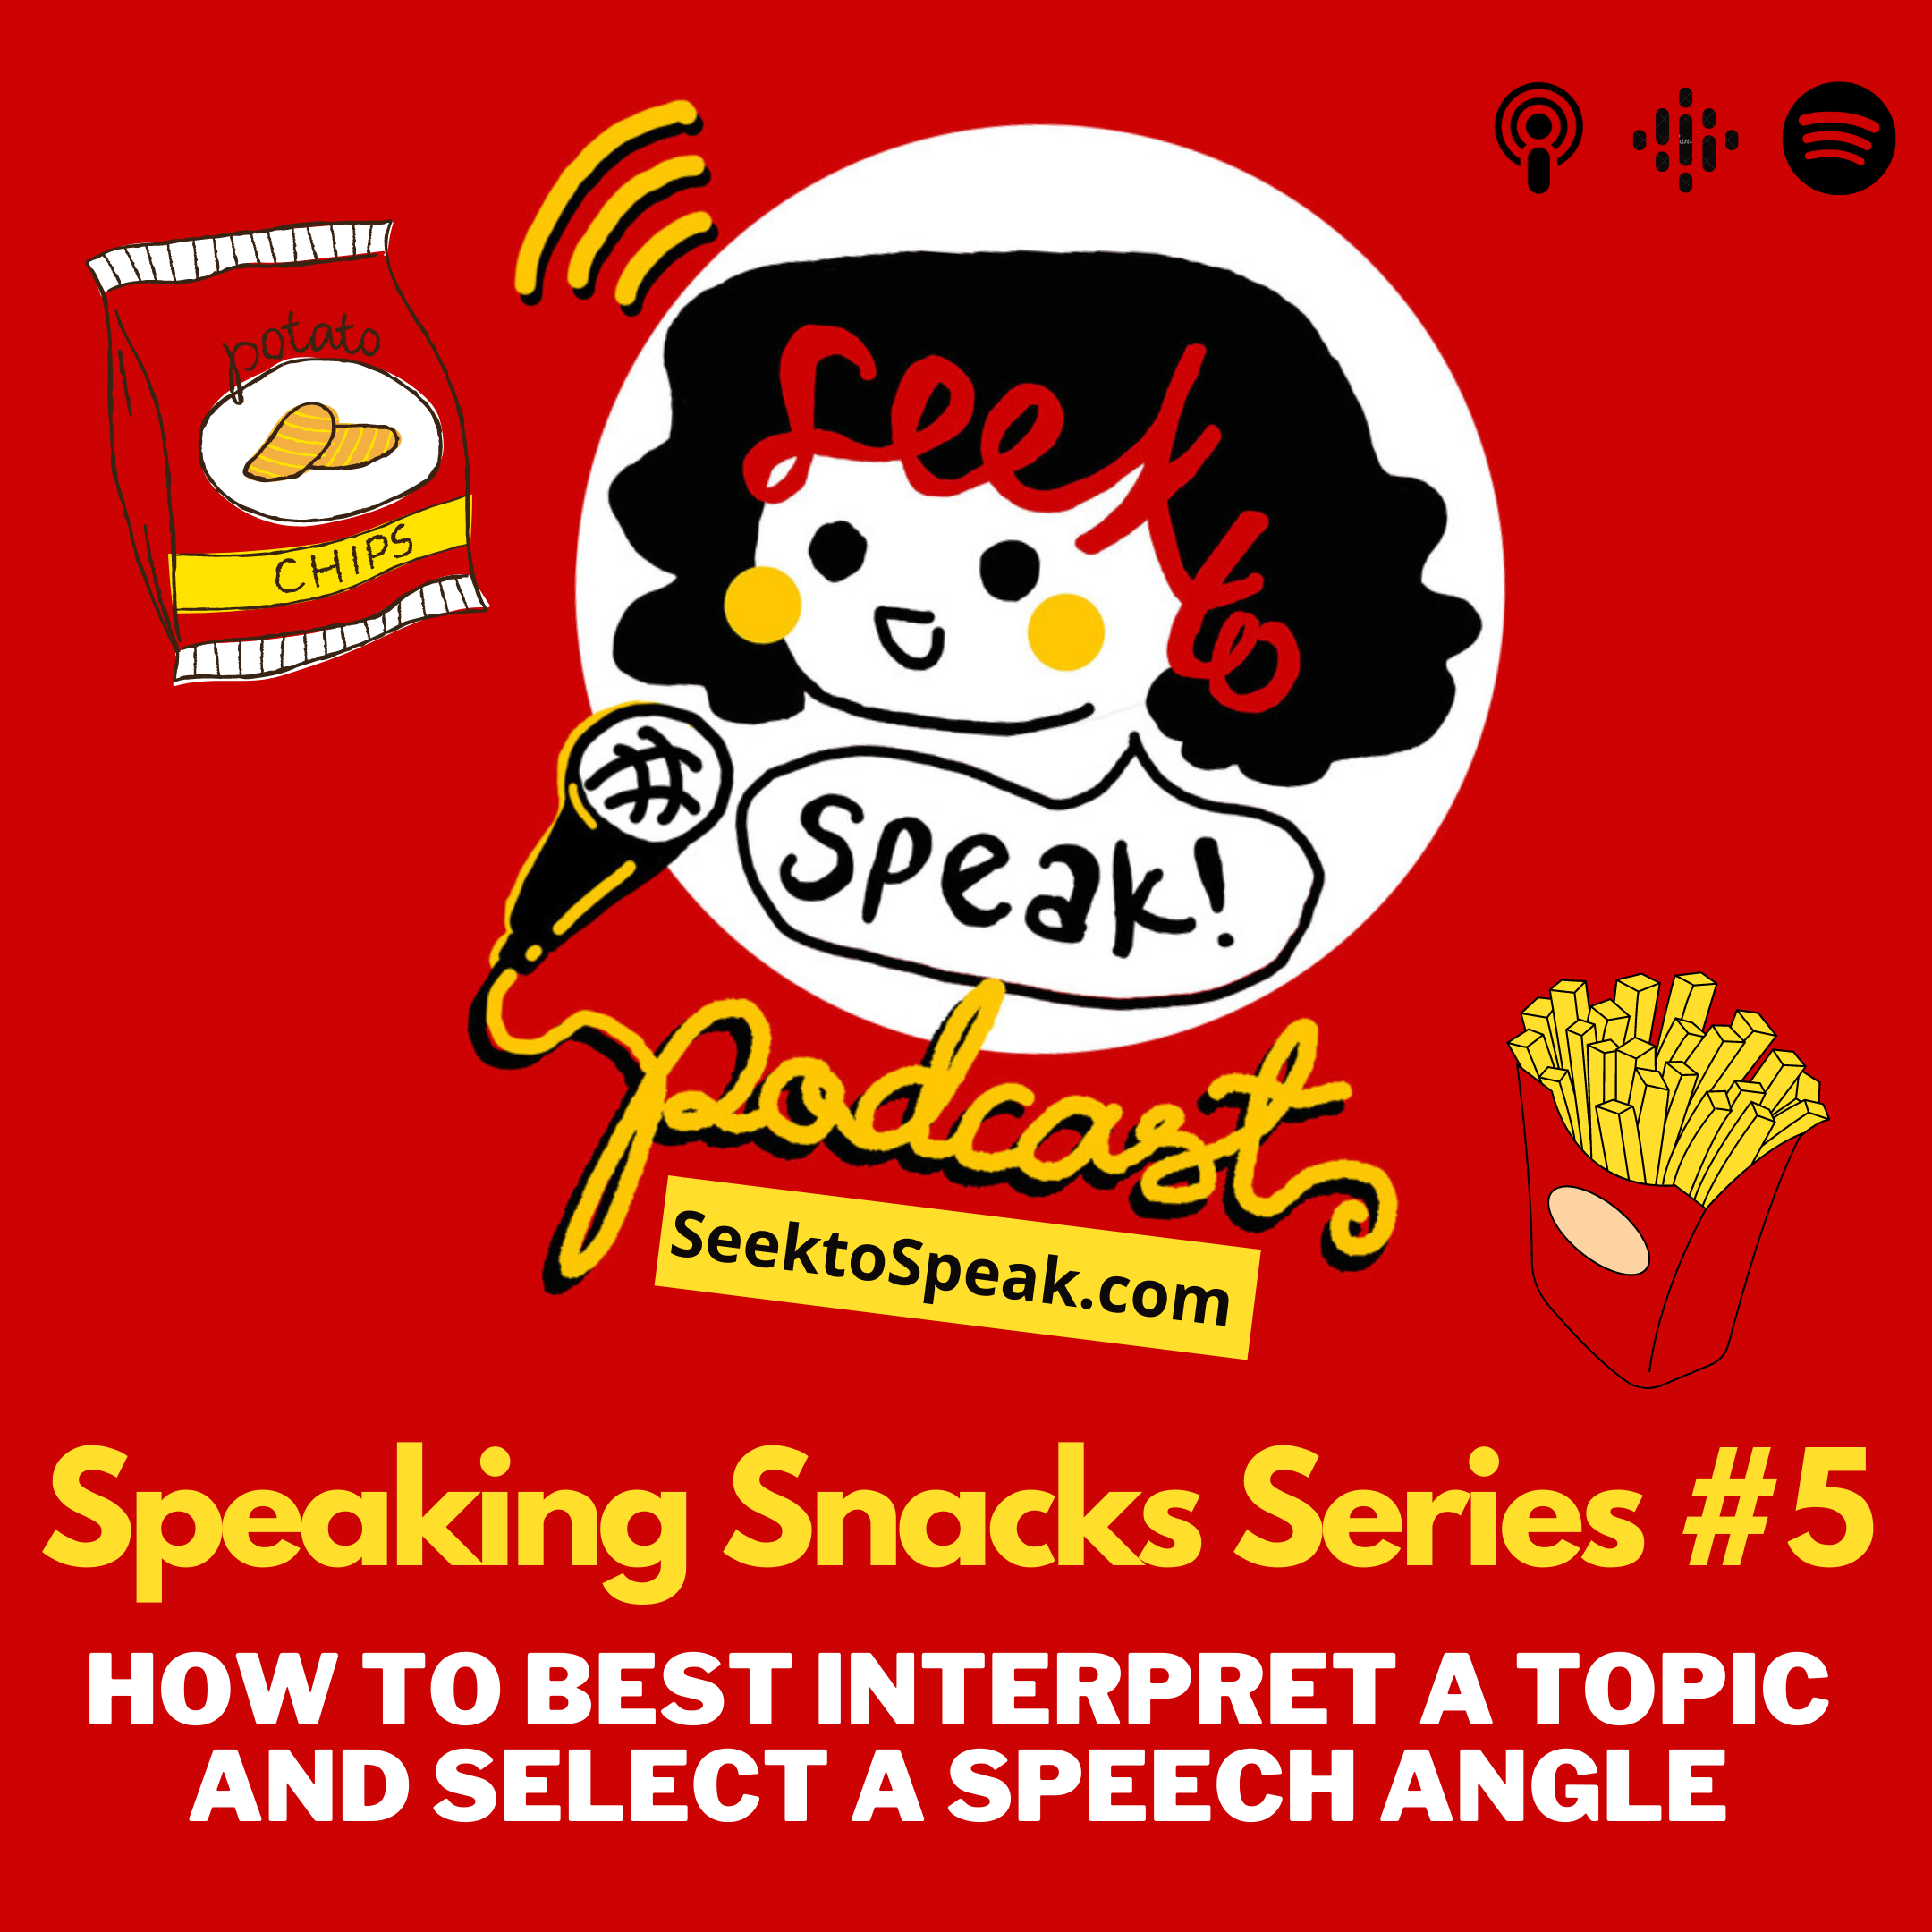 Speaking Snacks Series #5: – How to best interpret a topic and select a speech angle